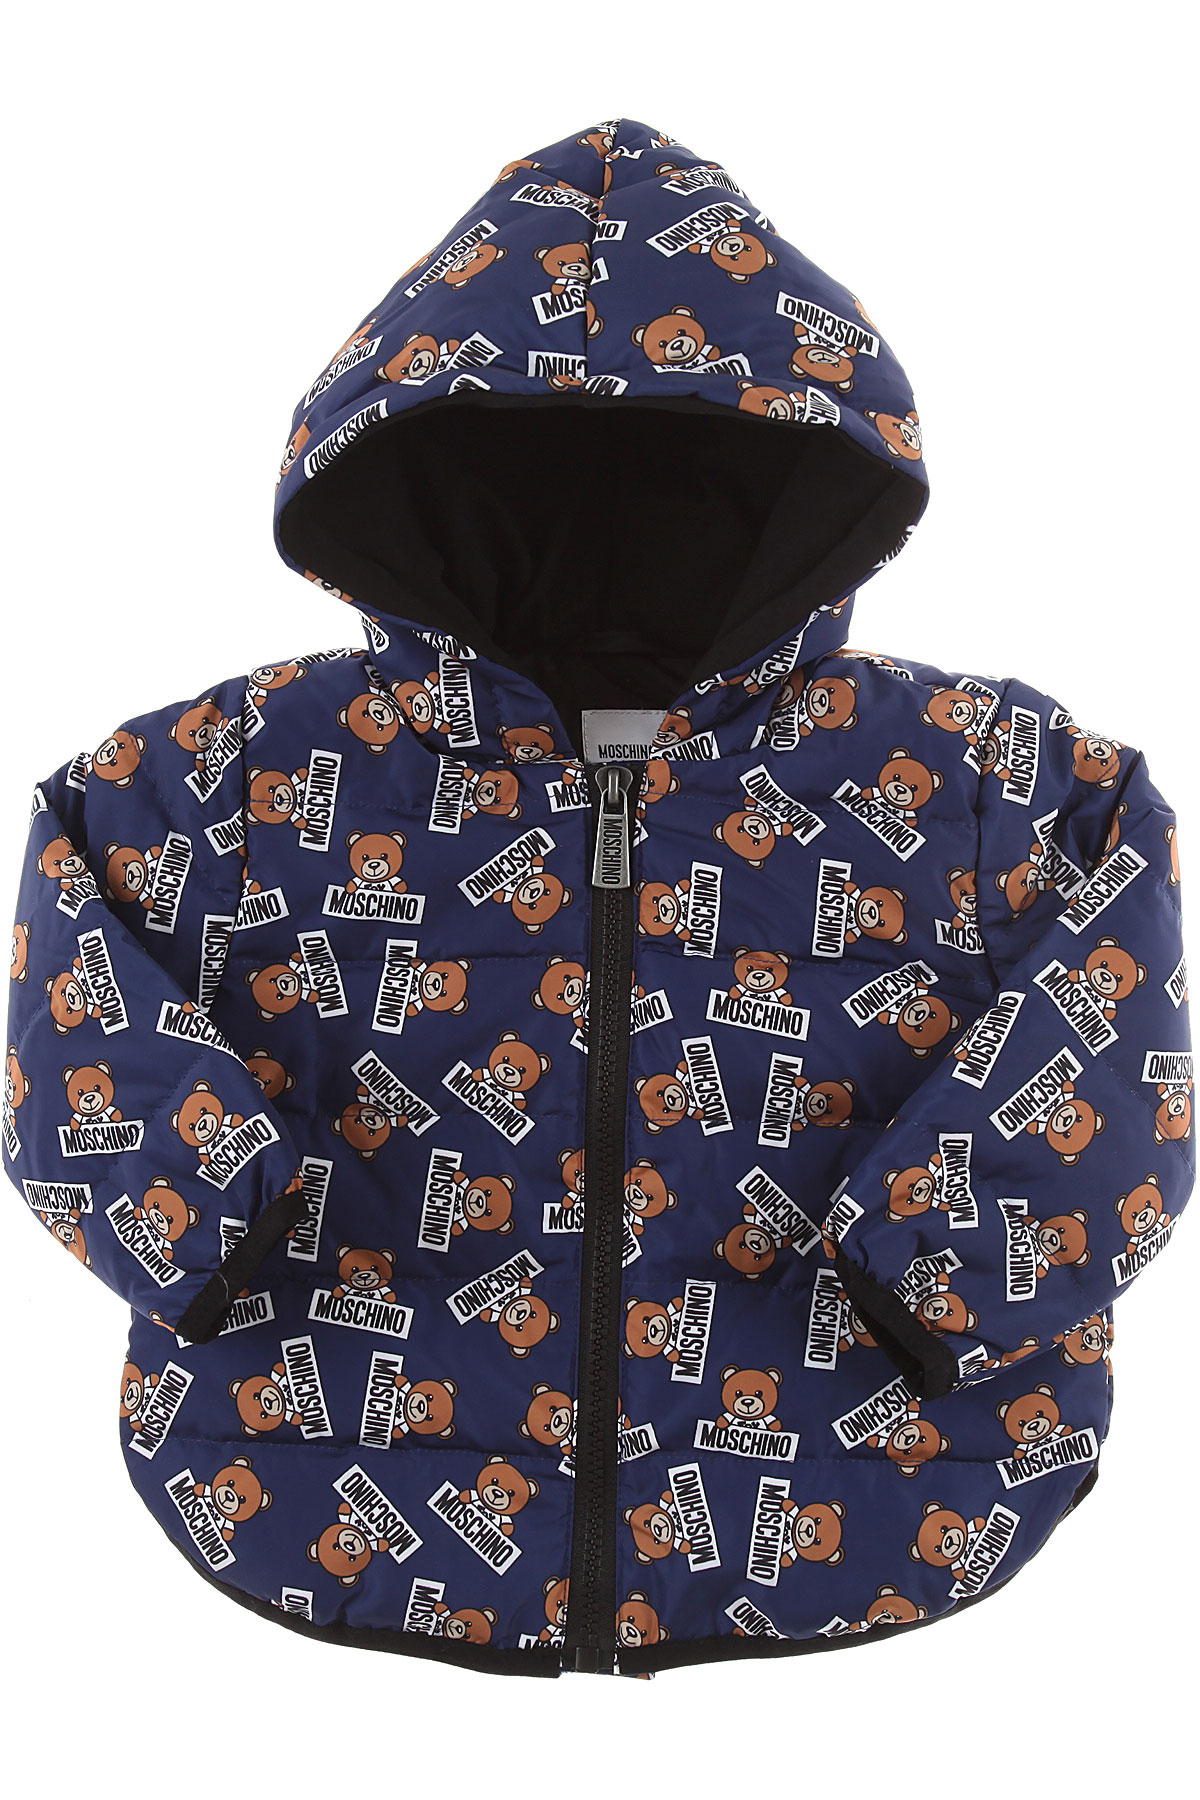 Image of Moschino Baby Down Jacket for Boys, Blue, polyester, 2017, 24M 2Y 3Y 6M 9M